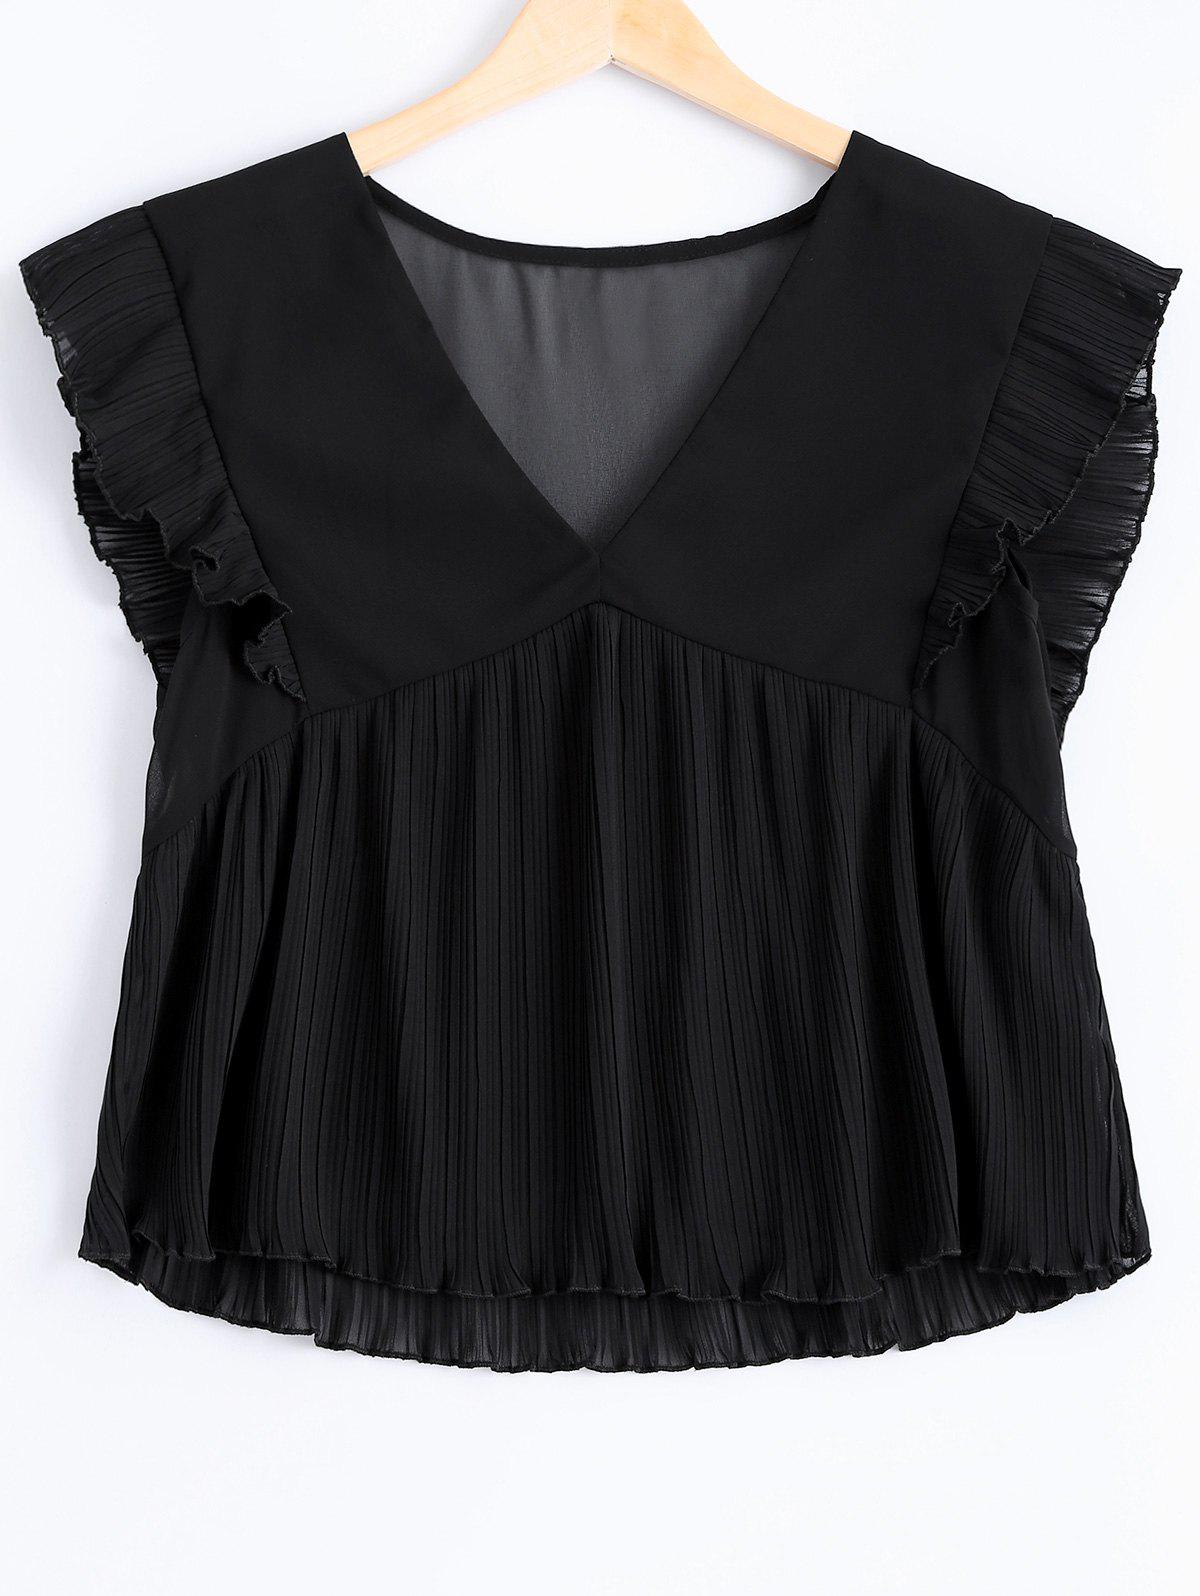 Fashionable Flounce Plunging Neck Fold Tank Top For Women - BLACK ONE SIZE(FIT SIZE XS TO M)